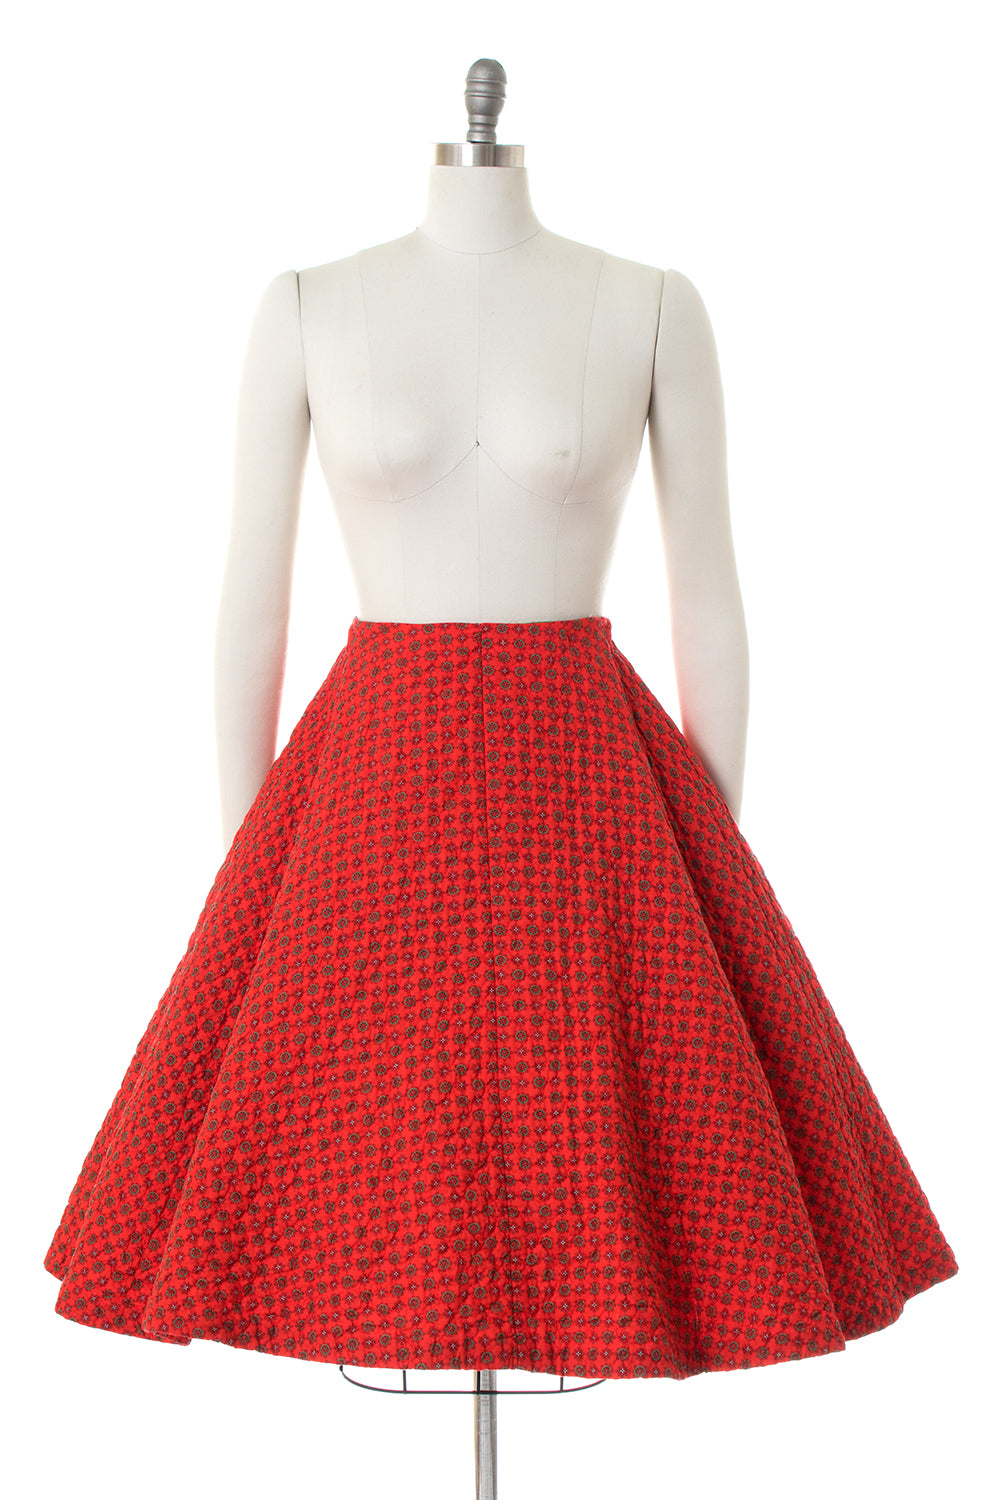 1950s Geometric Printed Cotton Circle Skirt